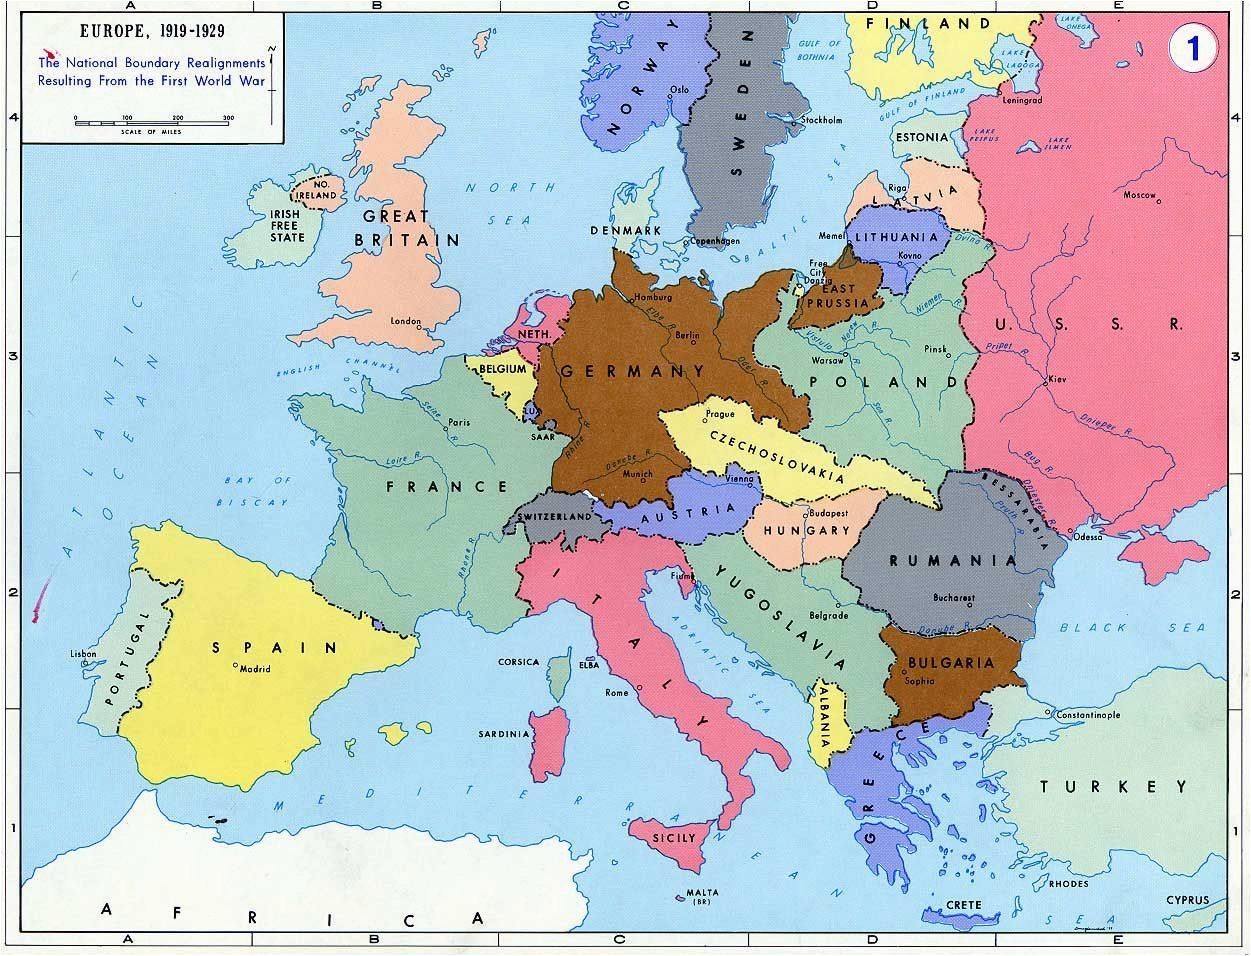 Map Of Europe before World War 2 Pre World War Ii Here are the Boundaries as A Result Of